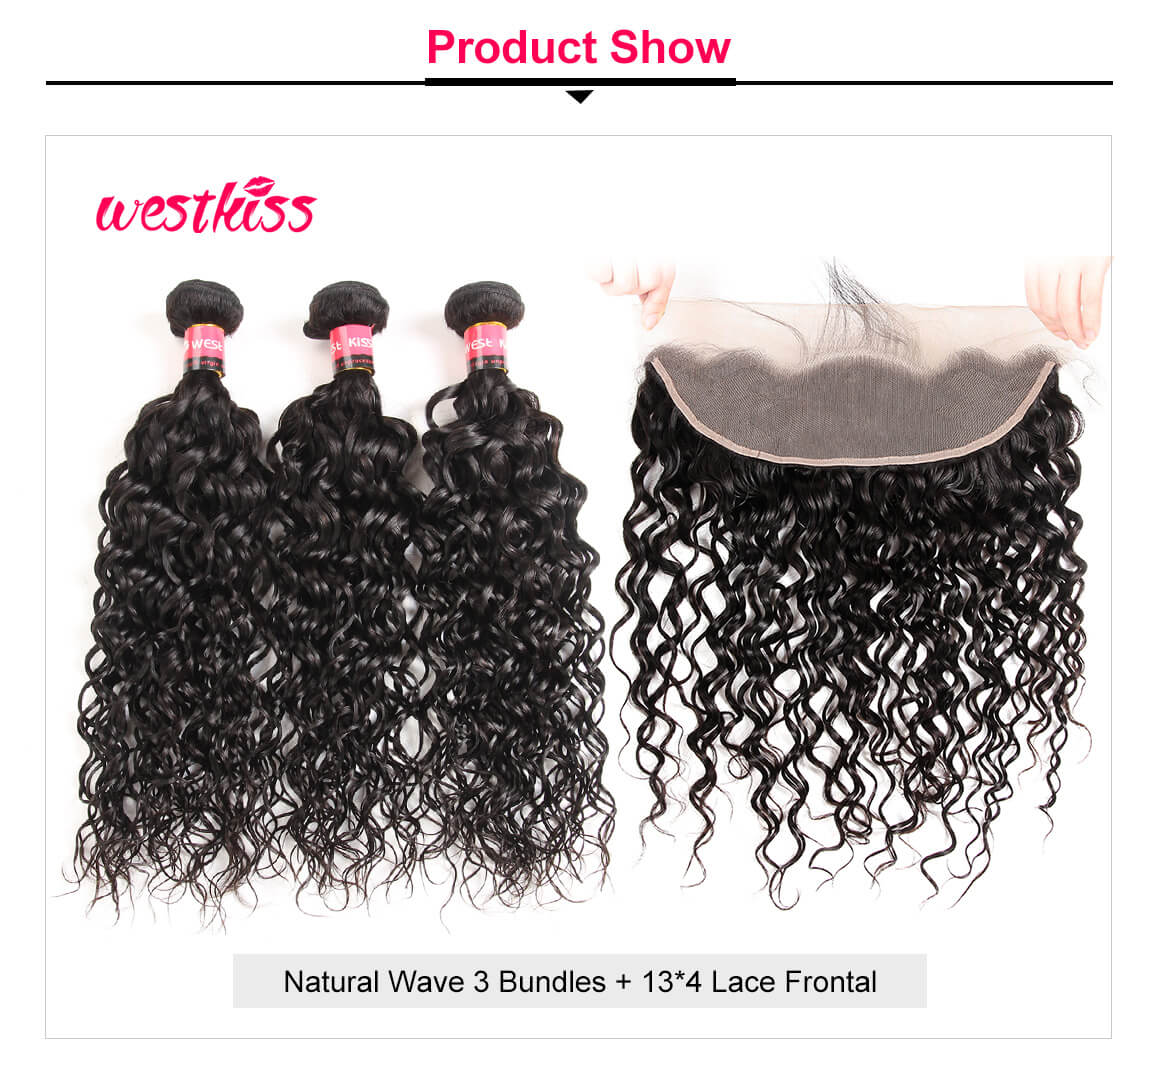 Natural Wave 3 Bundles Lace Frontal